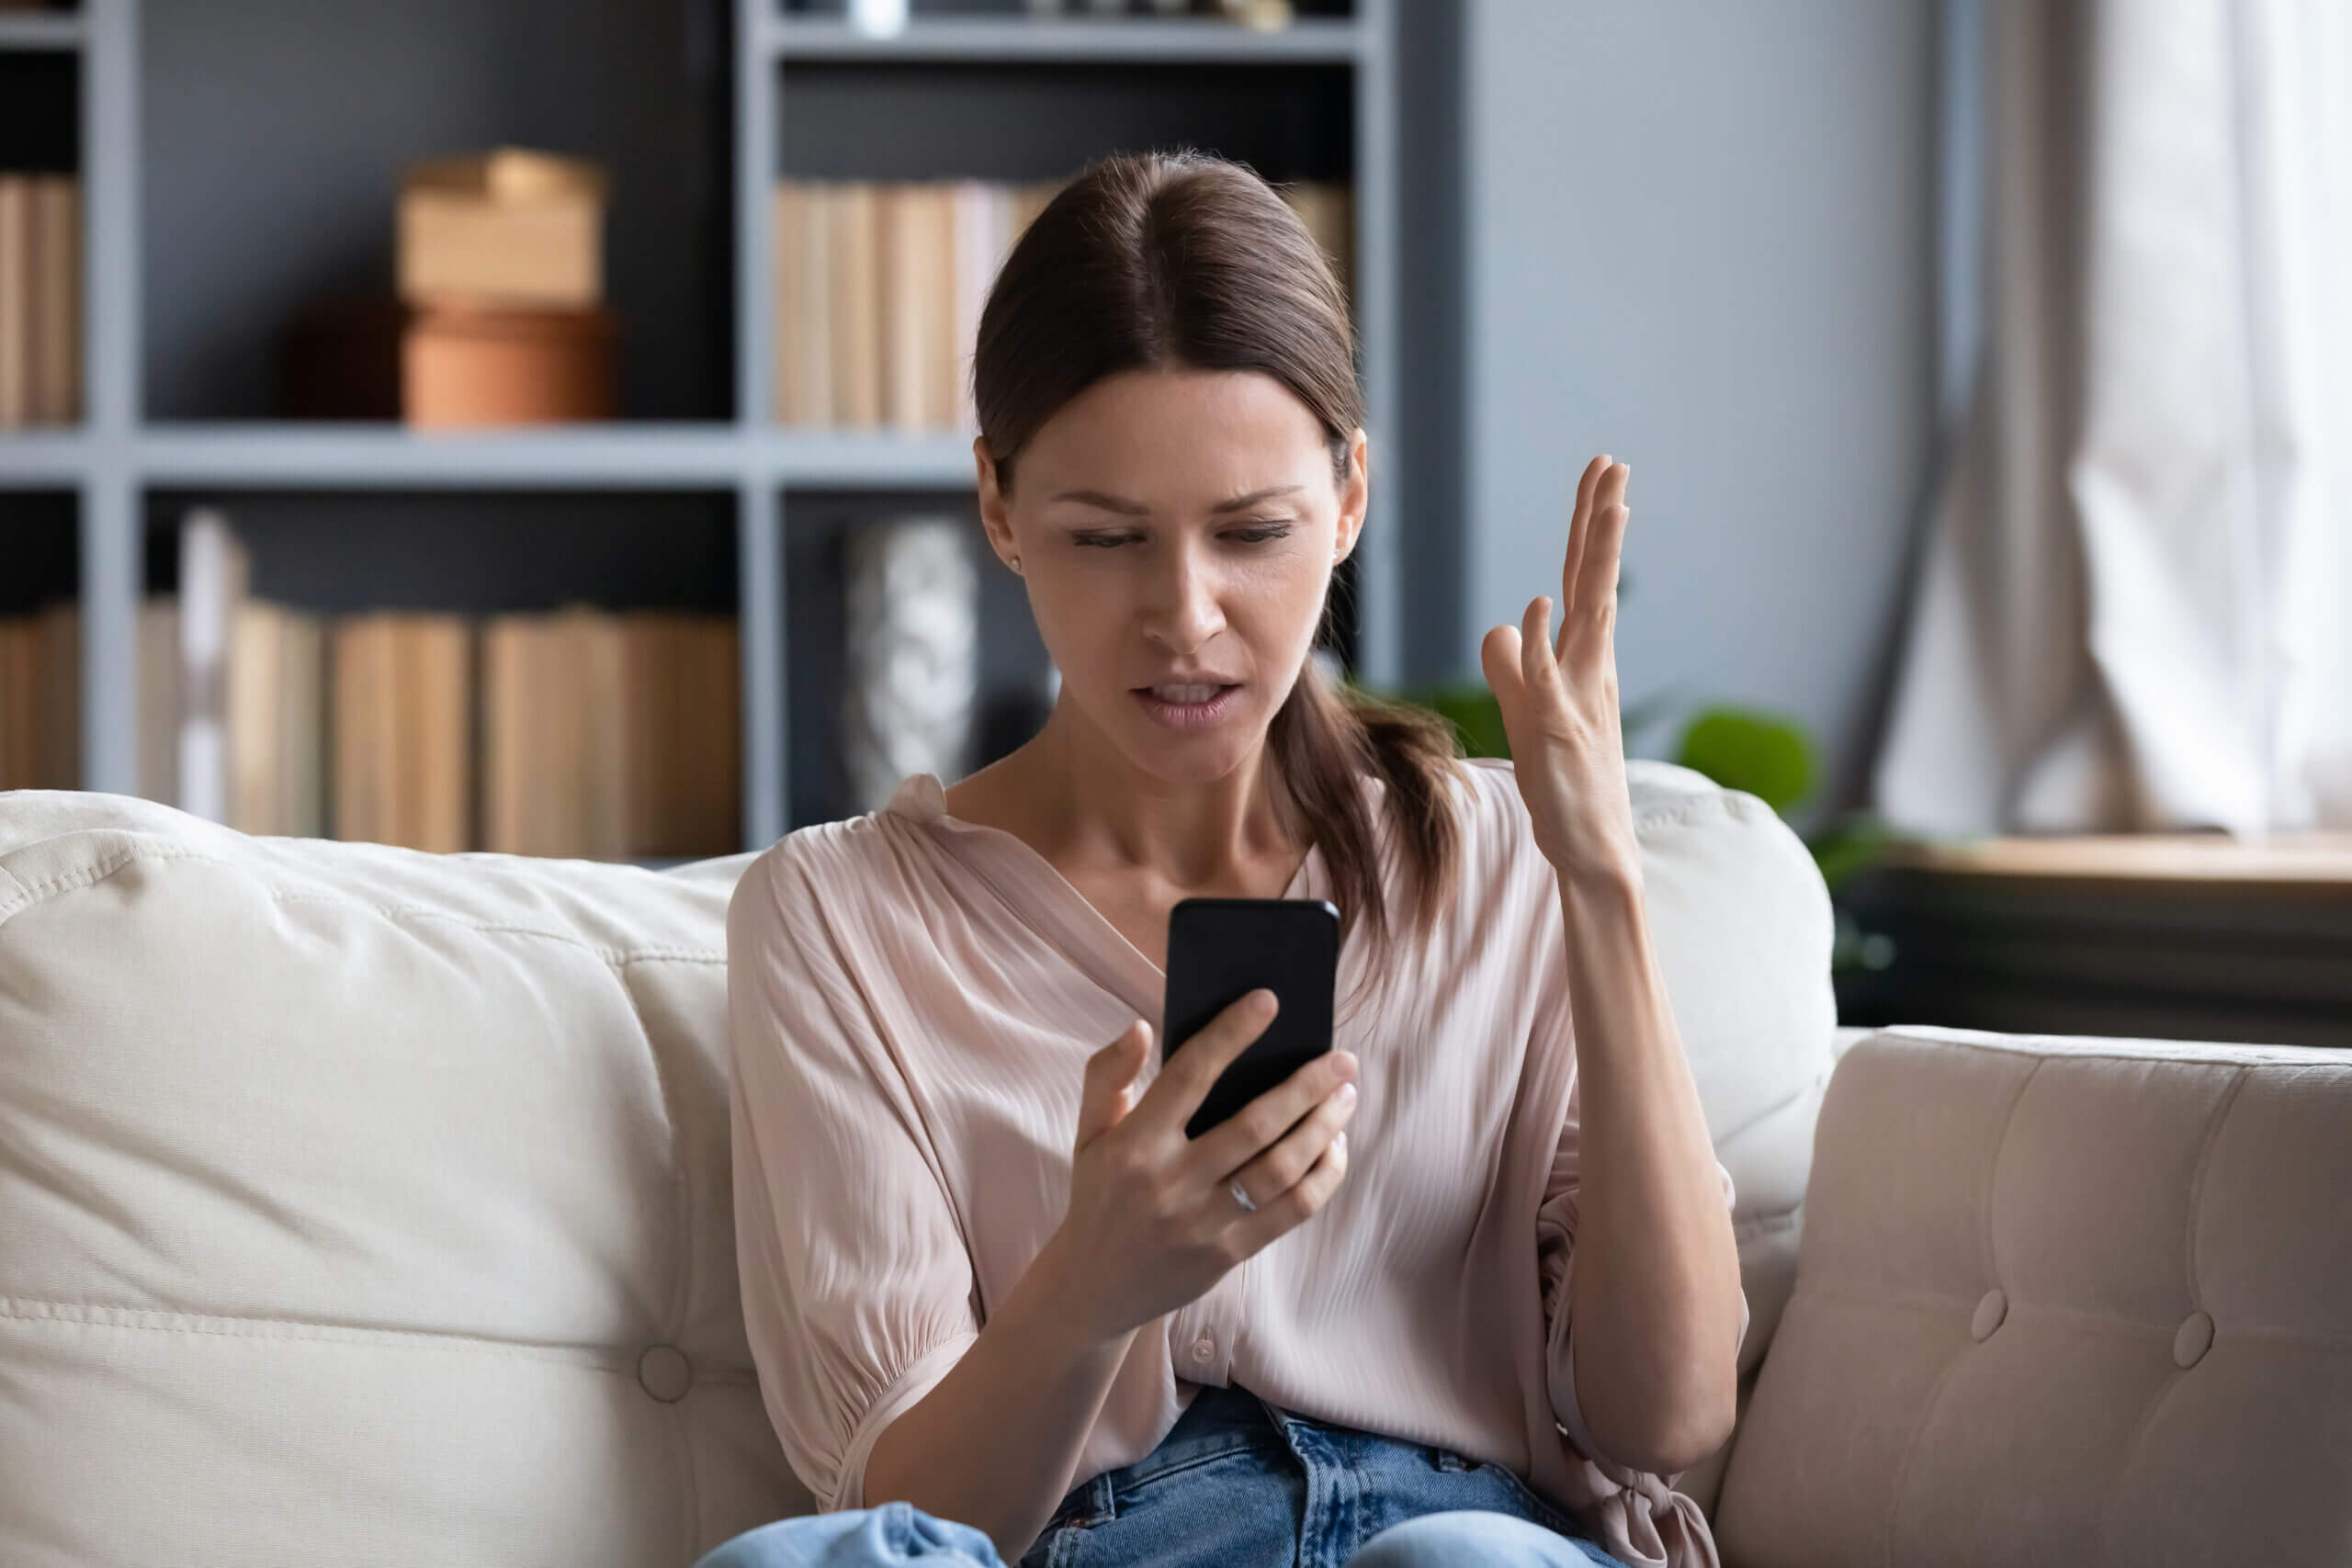 Woman recieving a text message promotion she considers spam